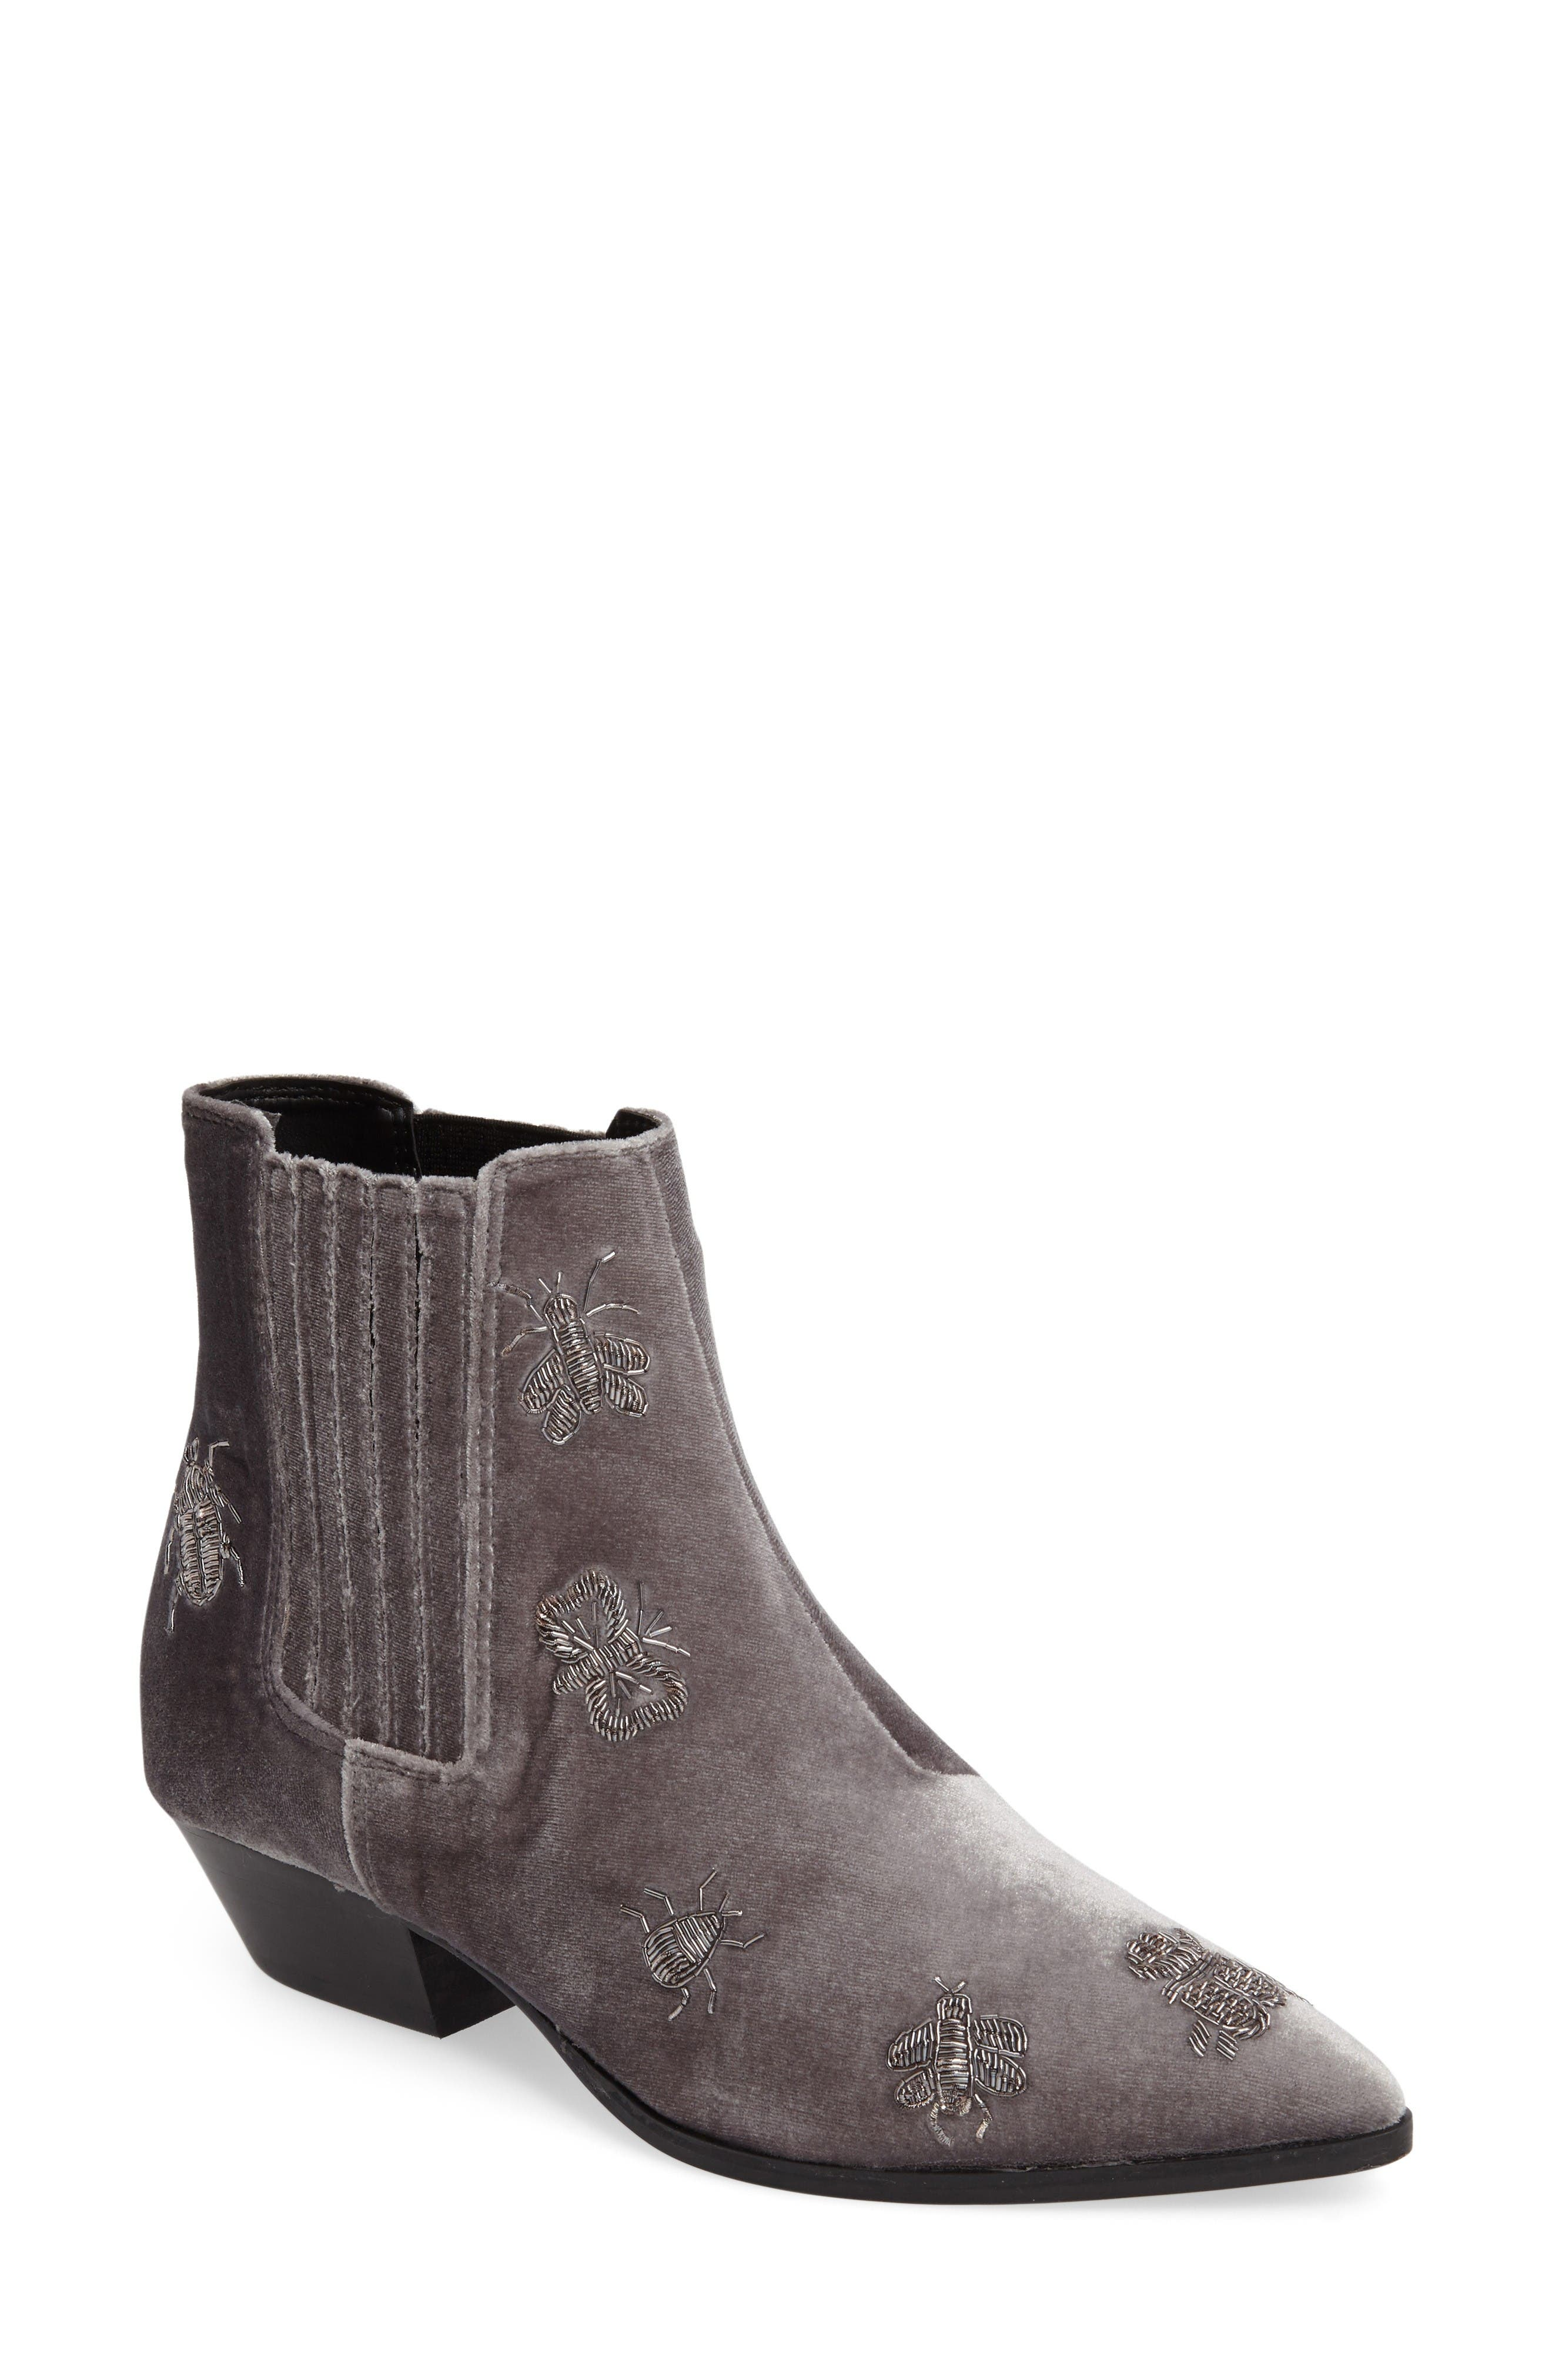 Main Image - Topshop Ants Ankle Boot (Women)